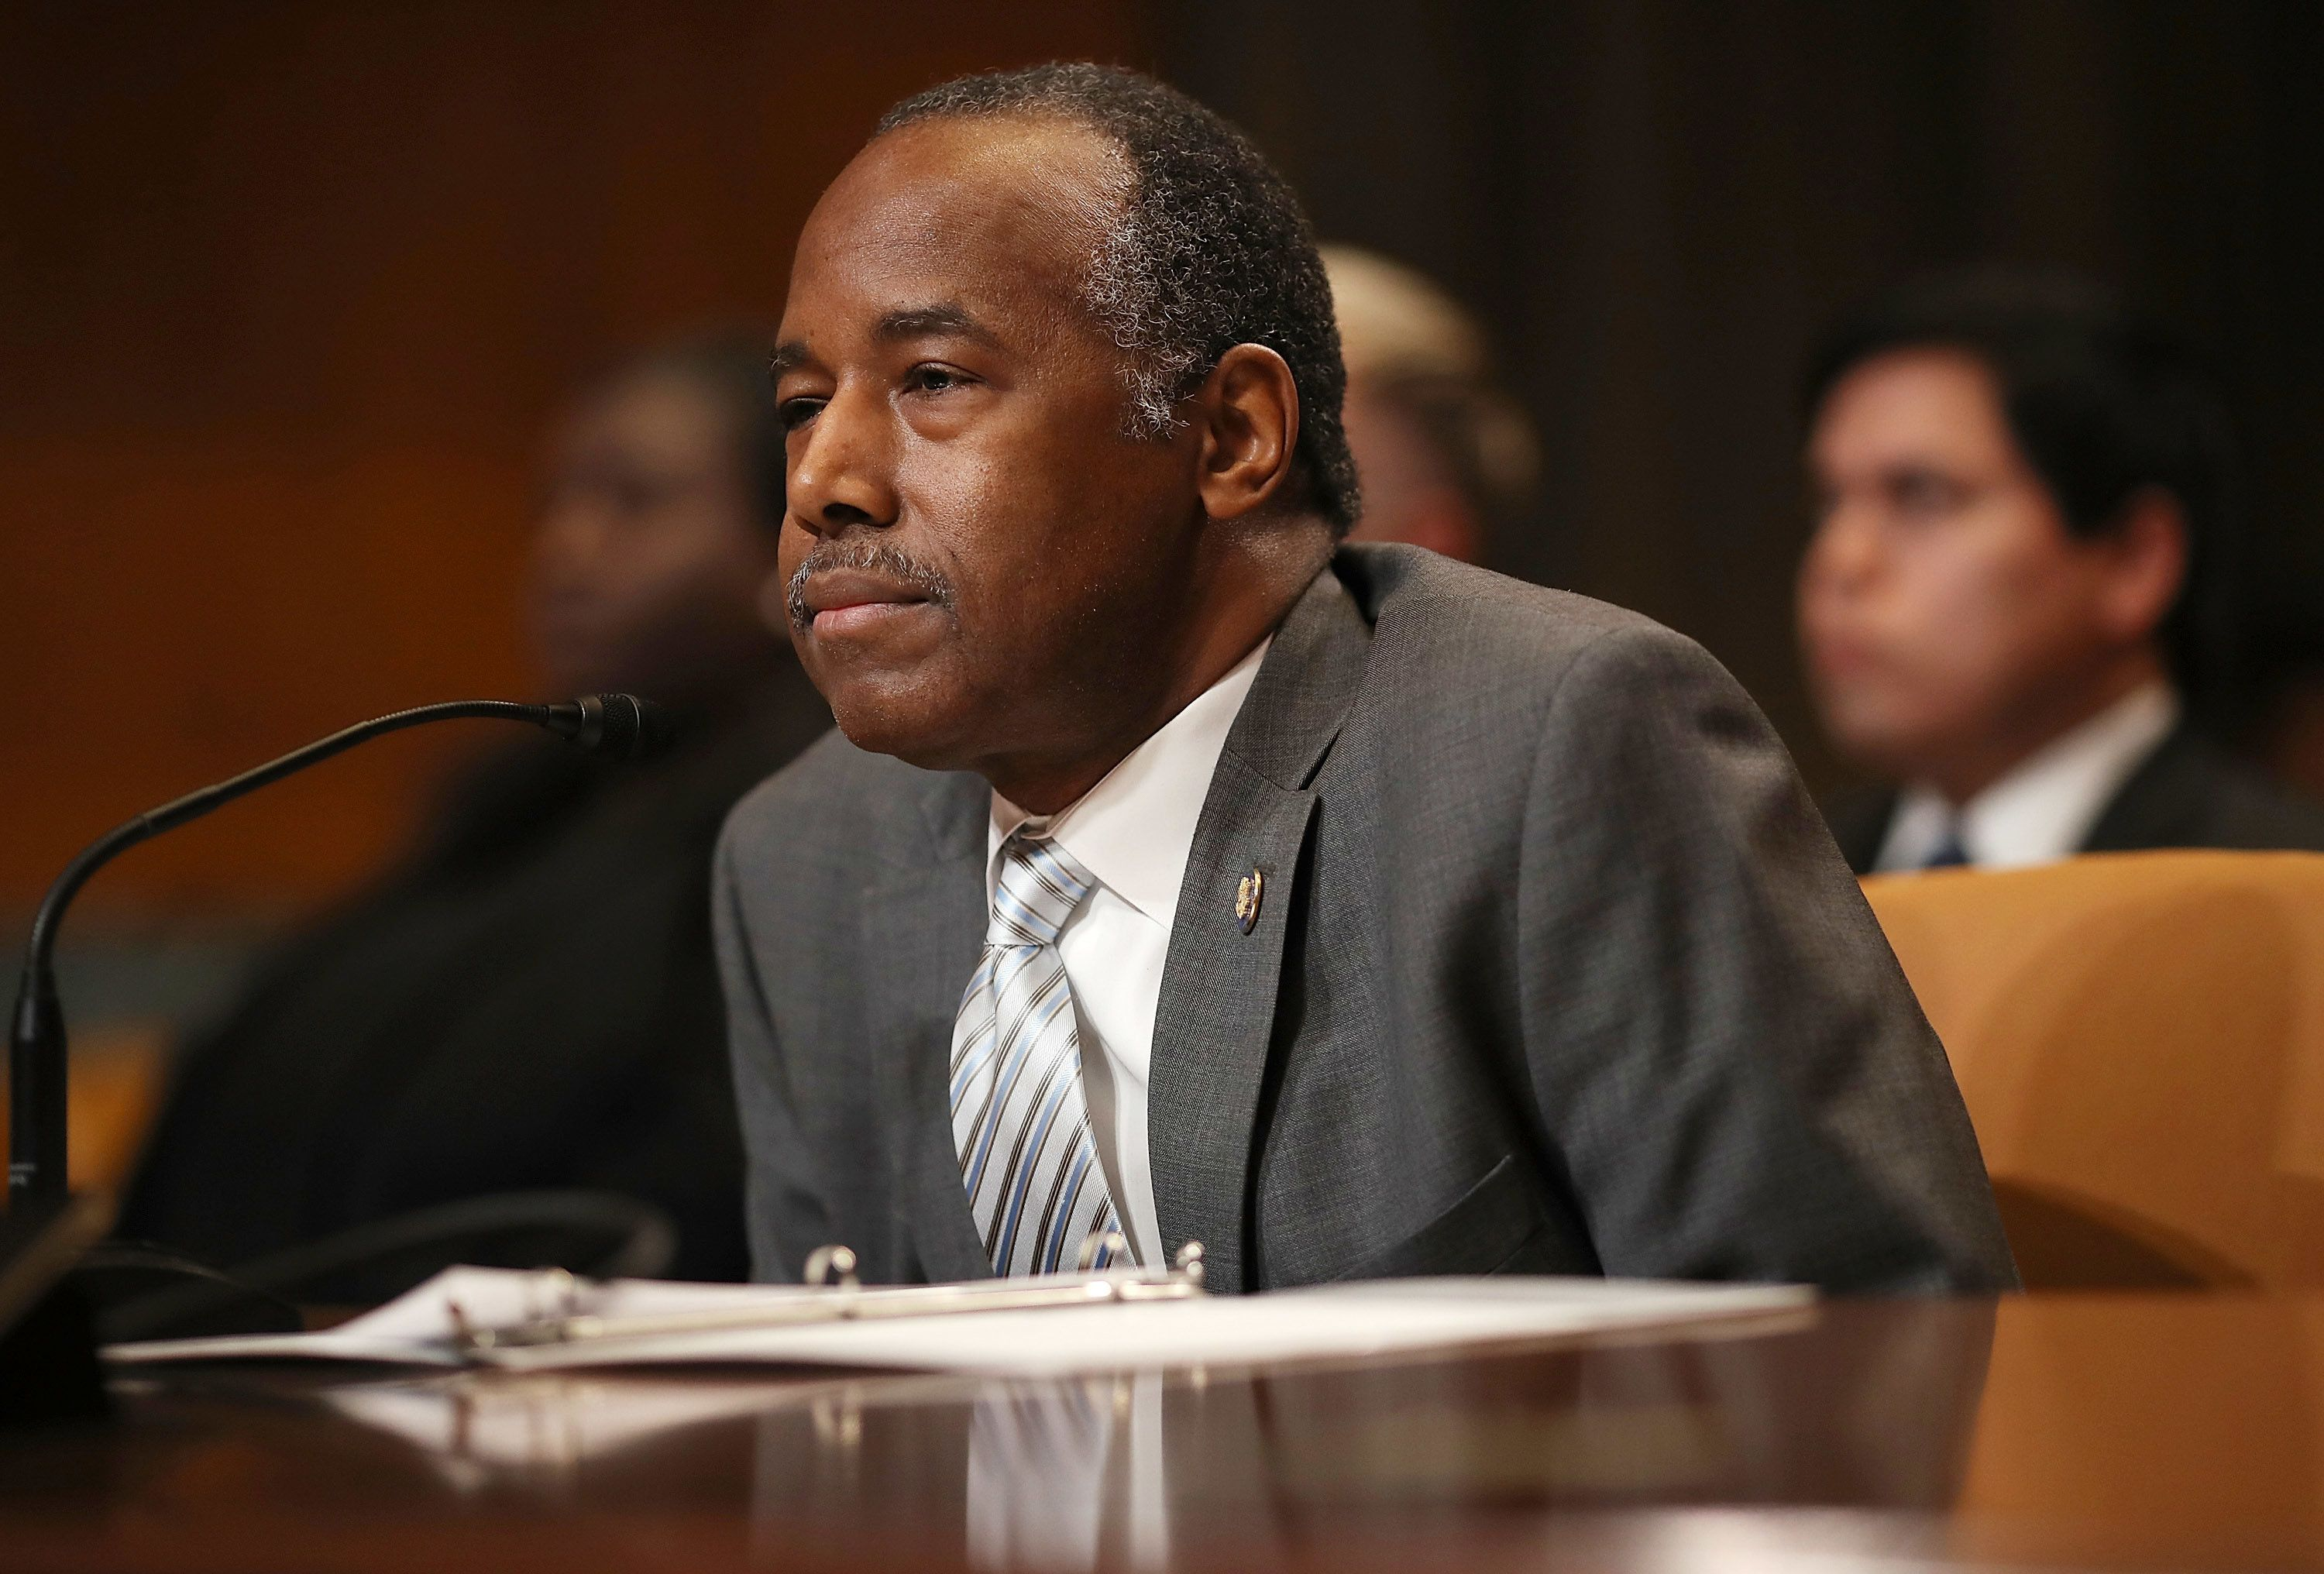 WASHINGTON, DC - APRIL 18:  HUD Secretary Ben Carson testifies before the Transportation, Housing and Urban Development, and Related Agencies Subcommittee on Capitol Hill April 18, 2018 in Washington, DC. The committee heard testimony on proposed budget estimates and justification for FY2019 for the Housing and Urban Development Department.  (Photo by Win McNamee/Getty Images)